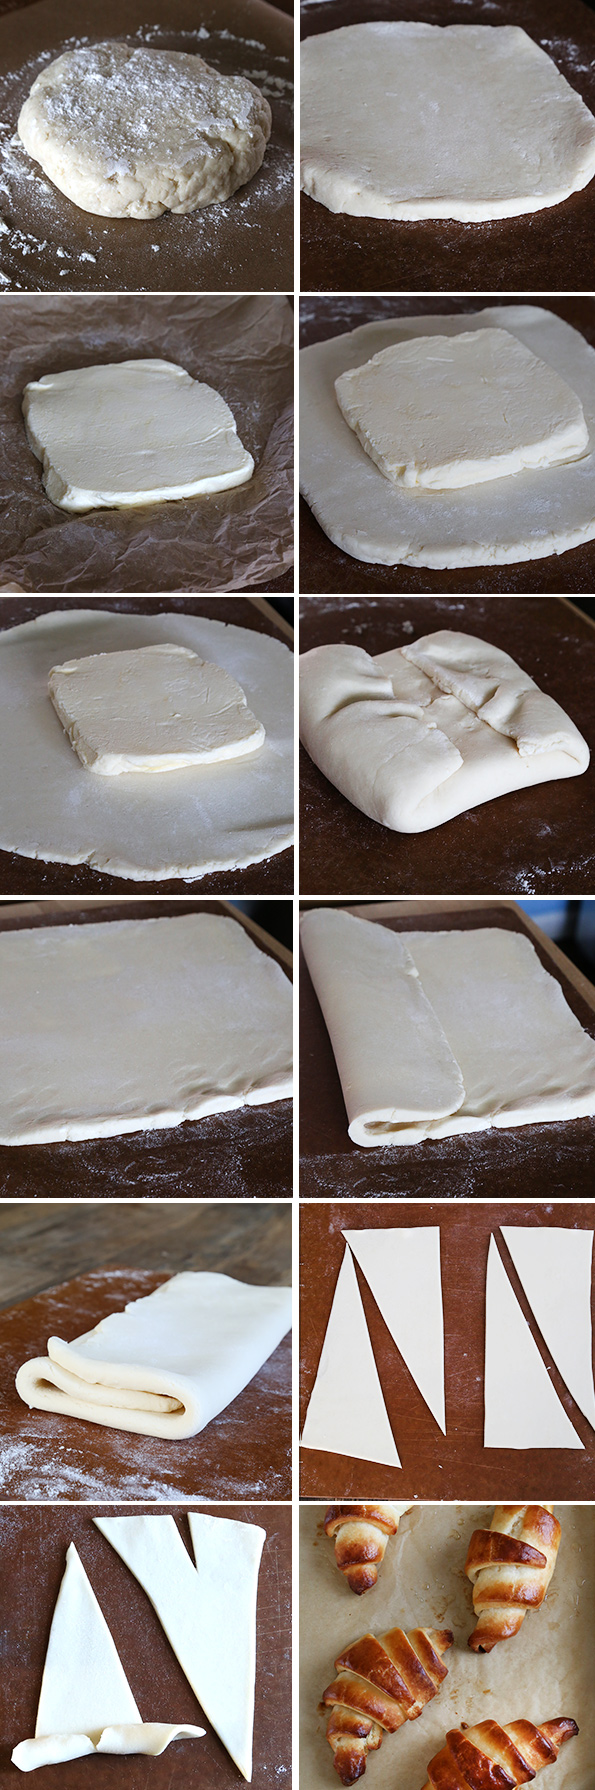 Gluten Free Croissants Step by Step